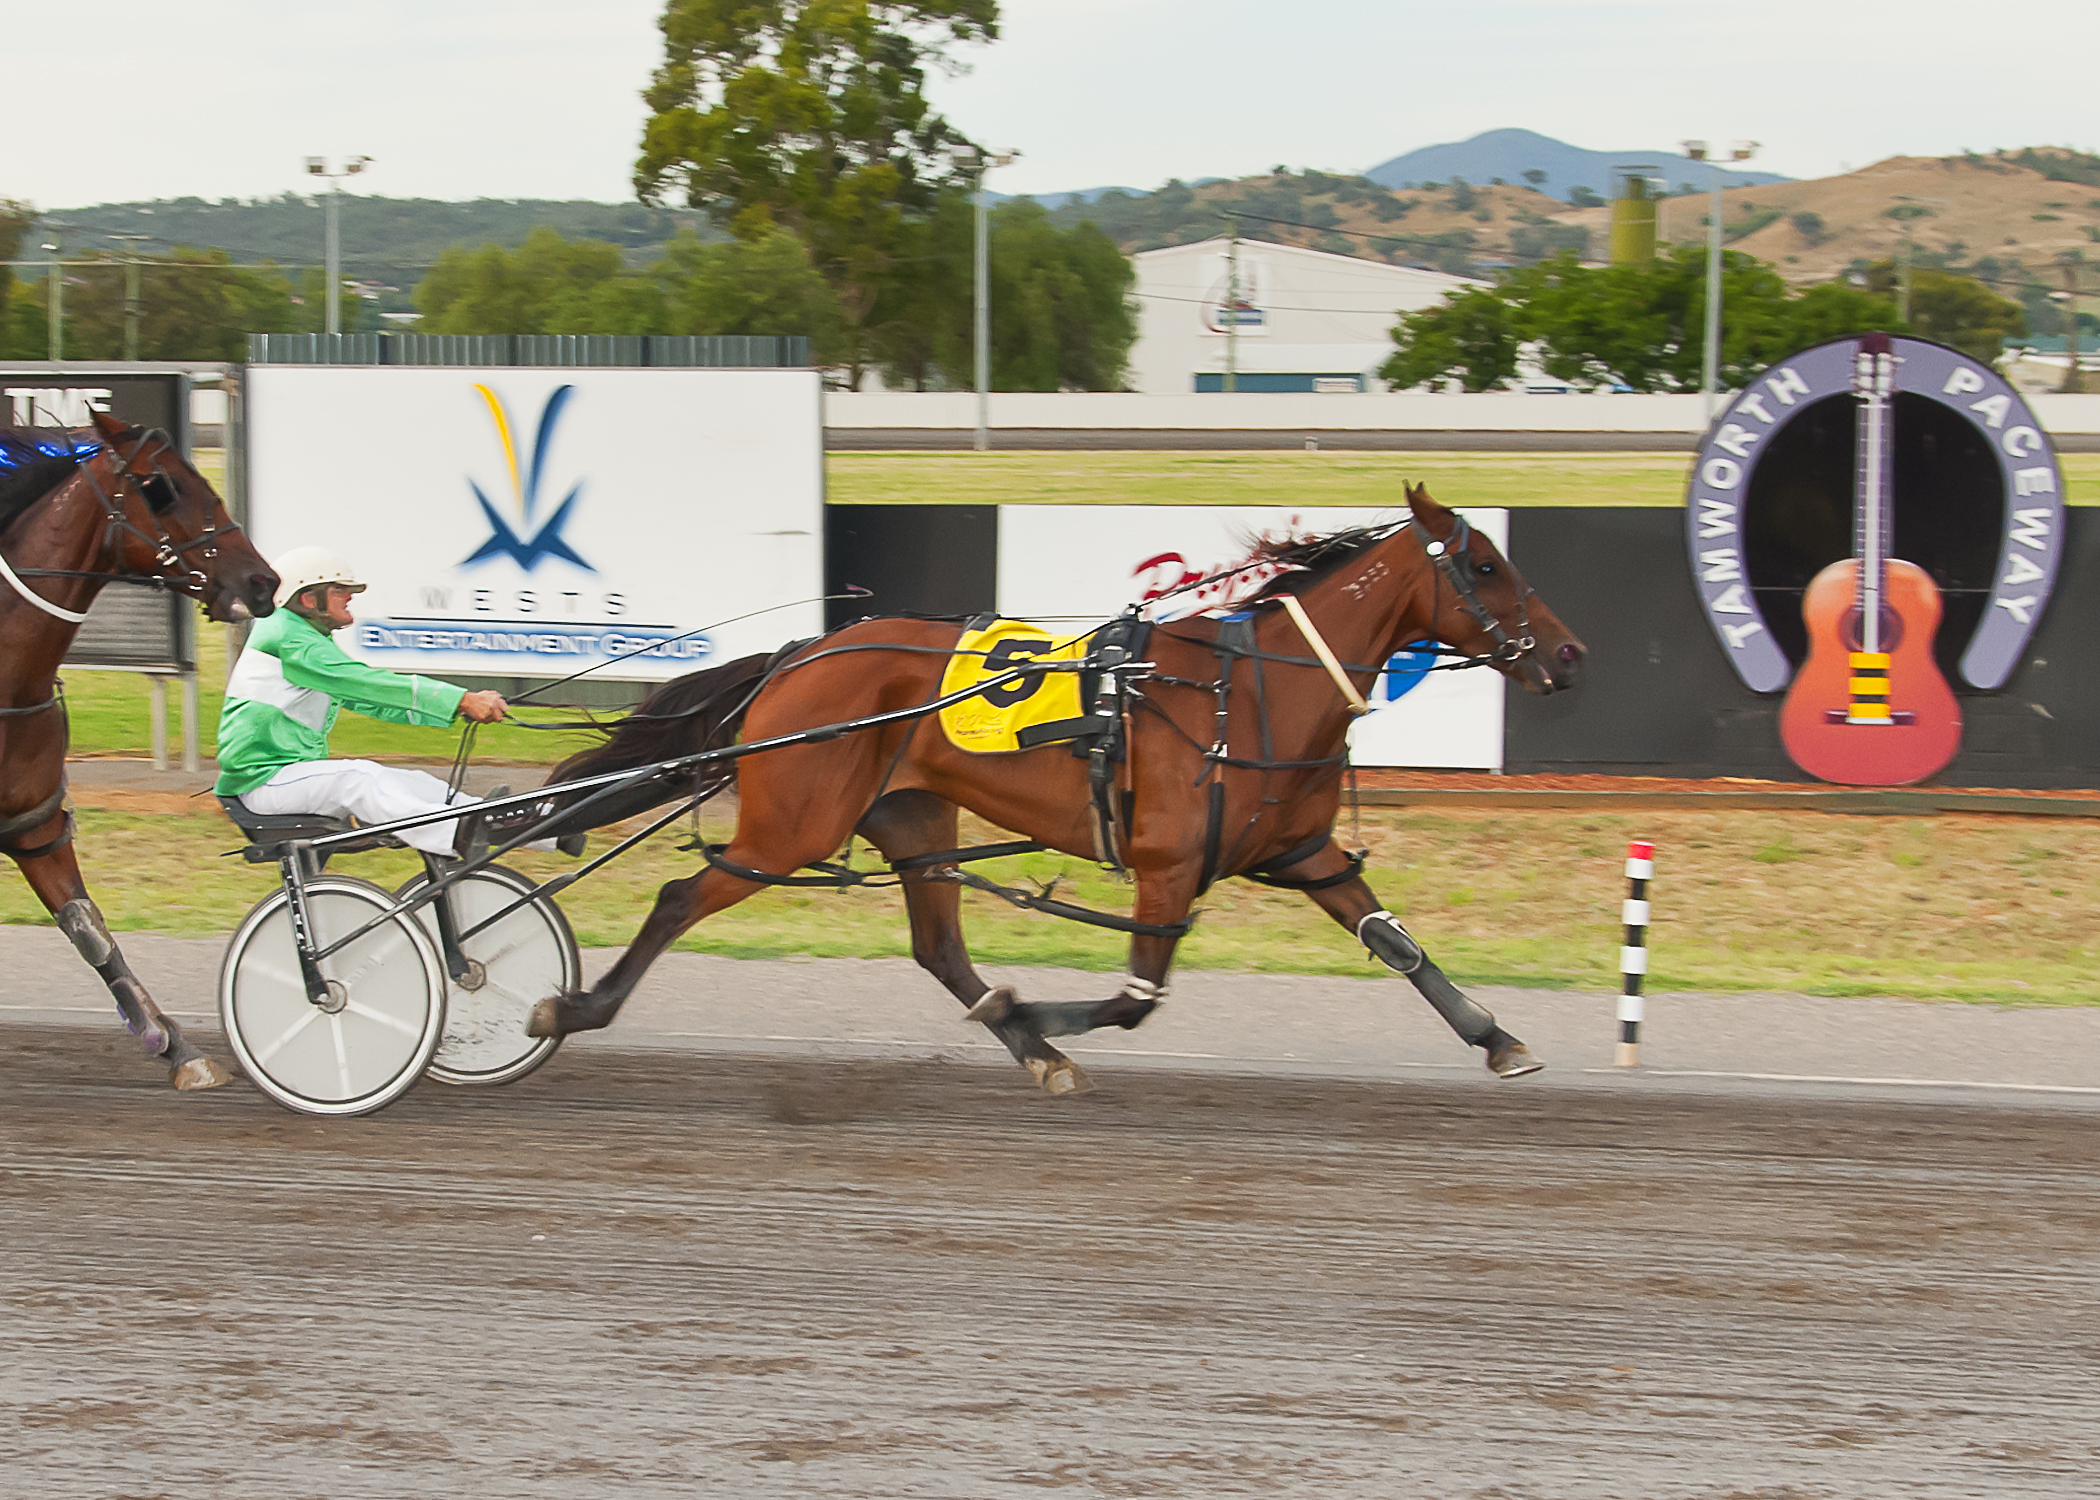 Image courtesy PeterMac Photography - Julie wins on Pepperal at Tamworth.